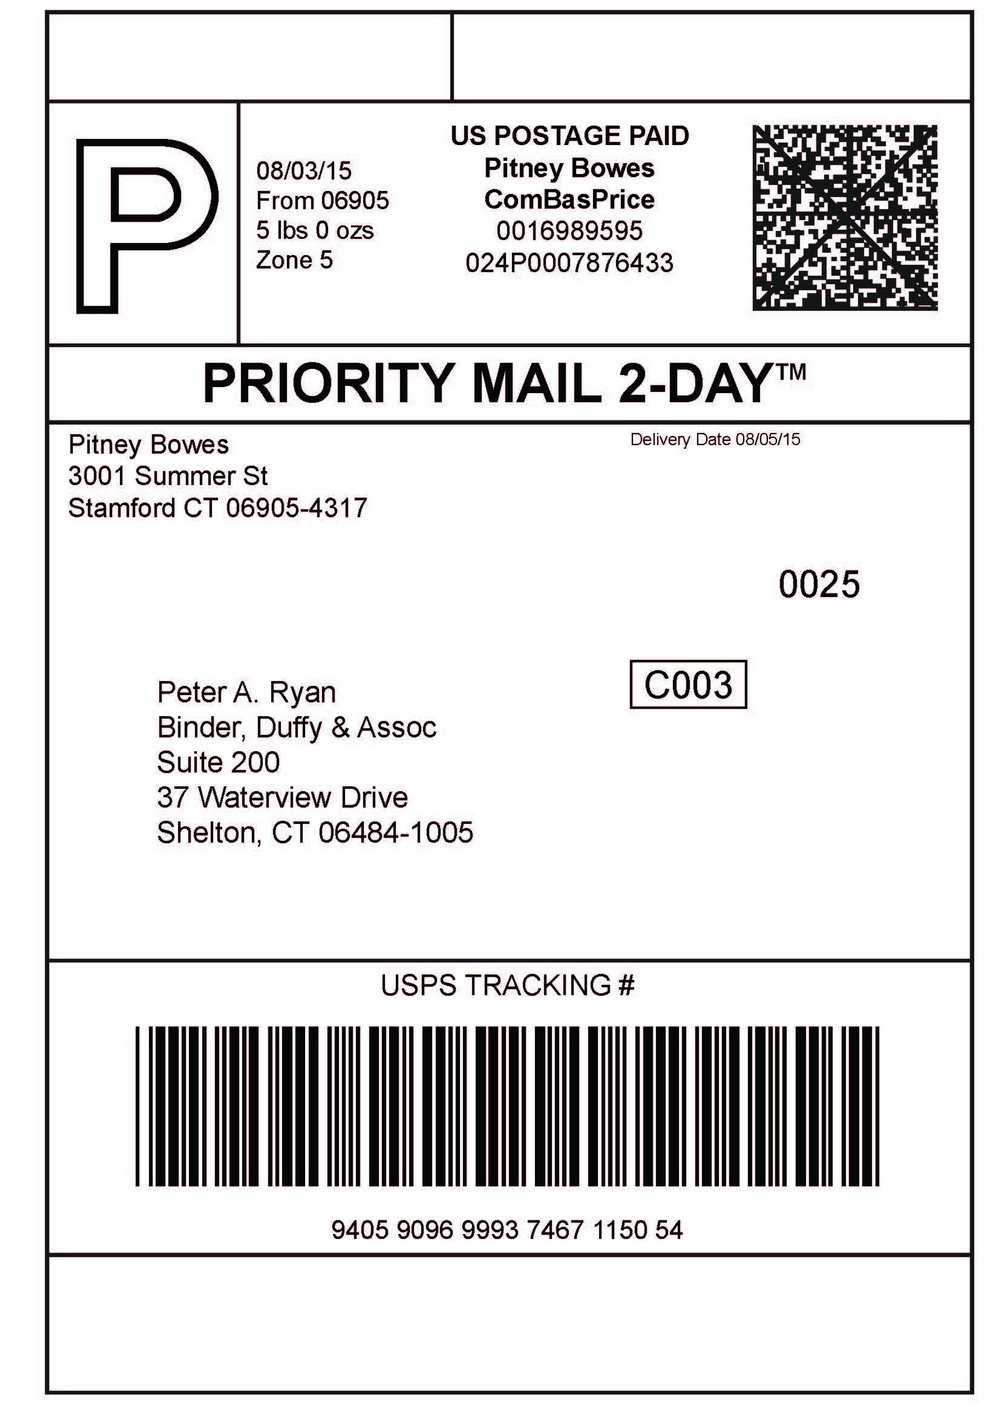 007 Template Ideas Maxresdefault Shipping Label Shocking For Fedex Label Template Word